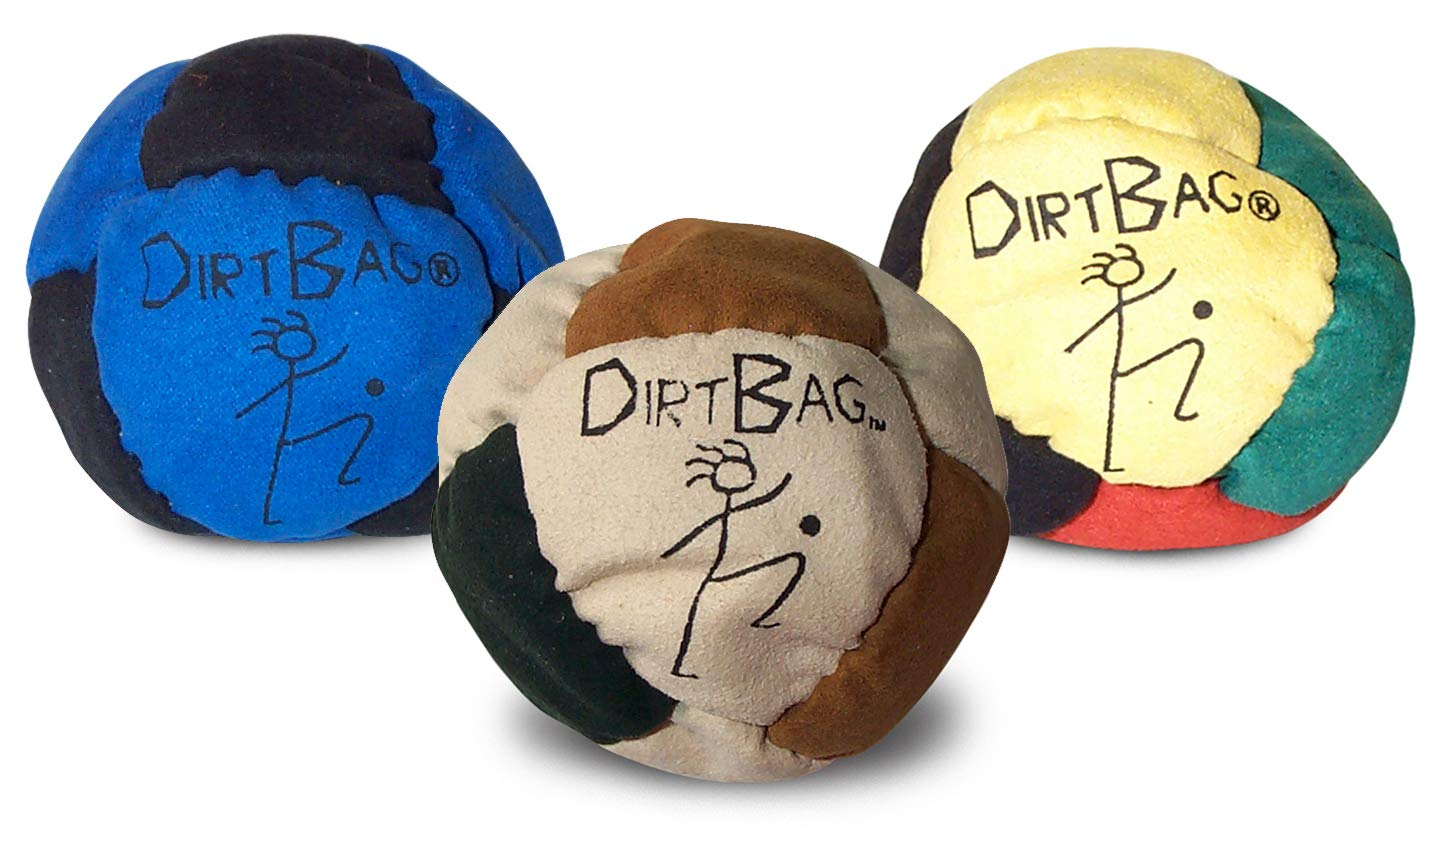 Dirtbag Footbag Classic Sand-Filled Hacky Sack Three Pack - Assorted Colors